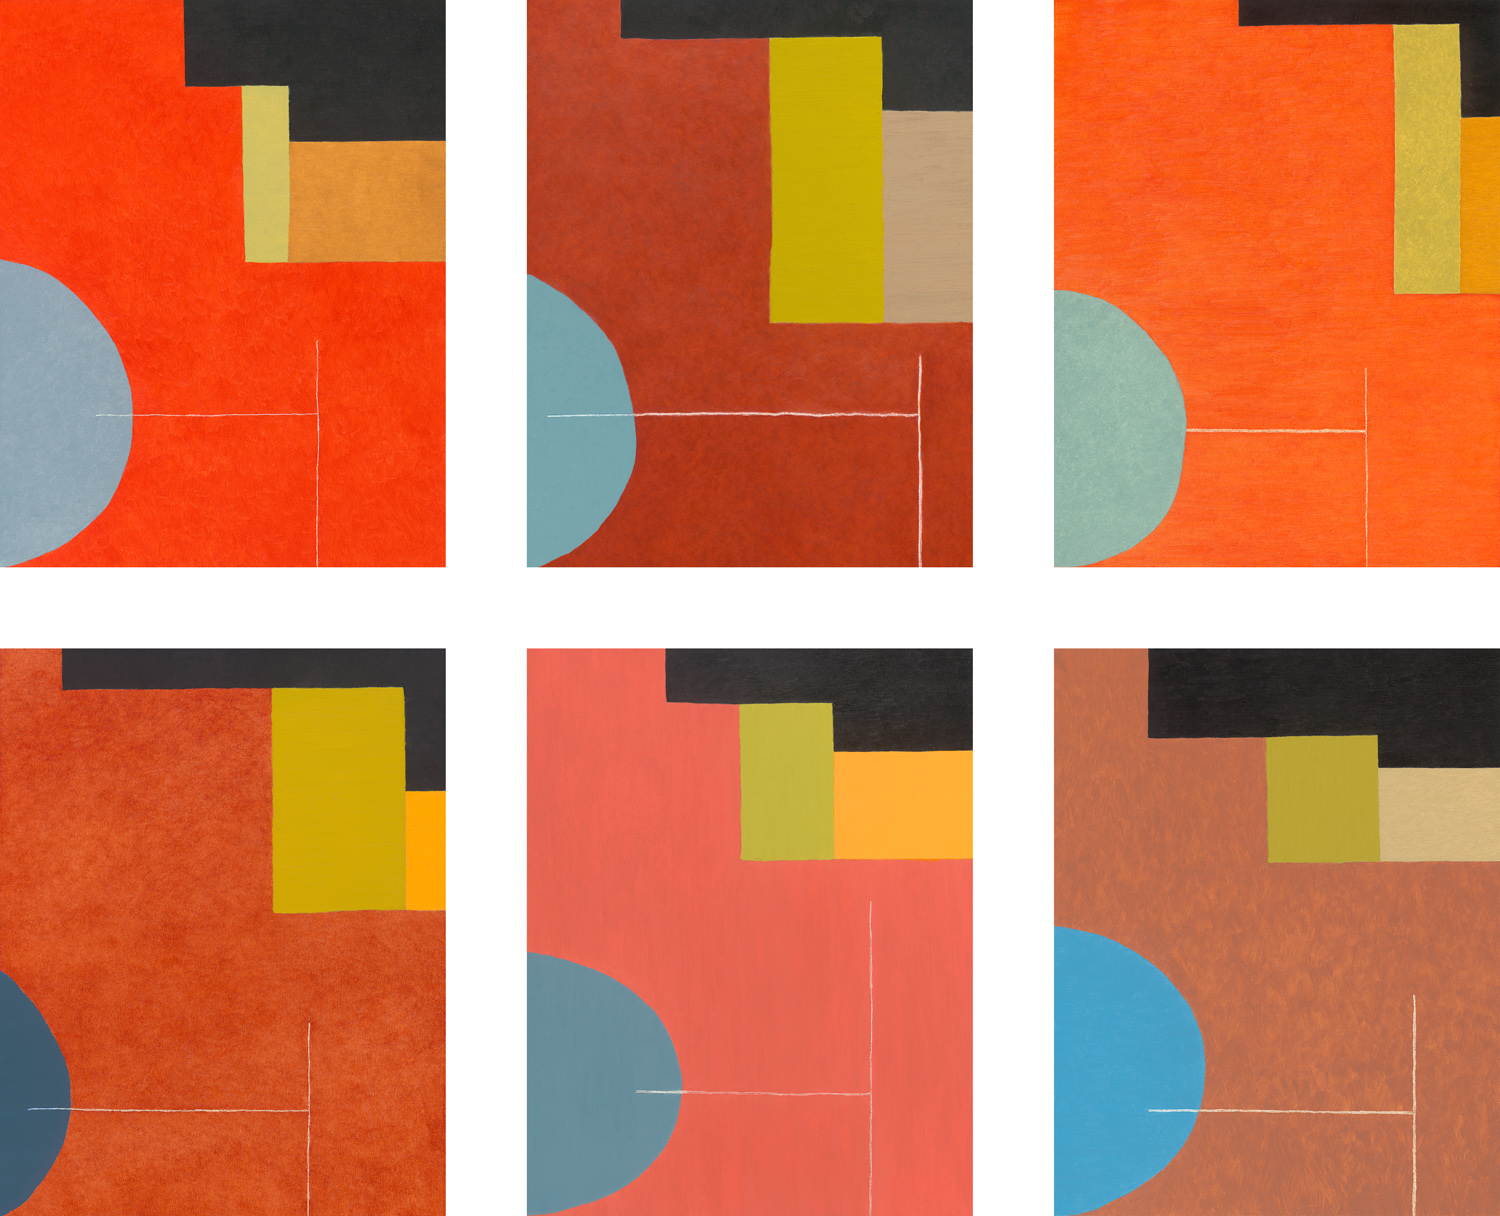 Earth Red Field series, 20 panels total (2009-2010), oil on board, each panel: 14 x 11 in.